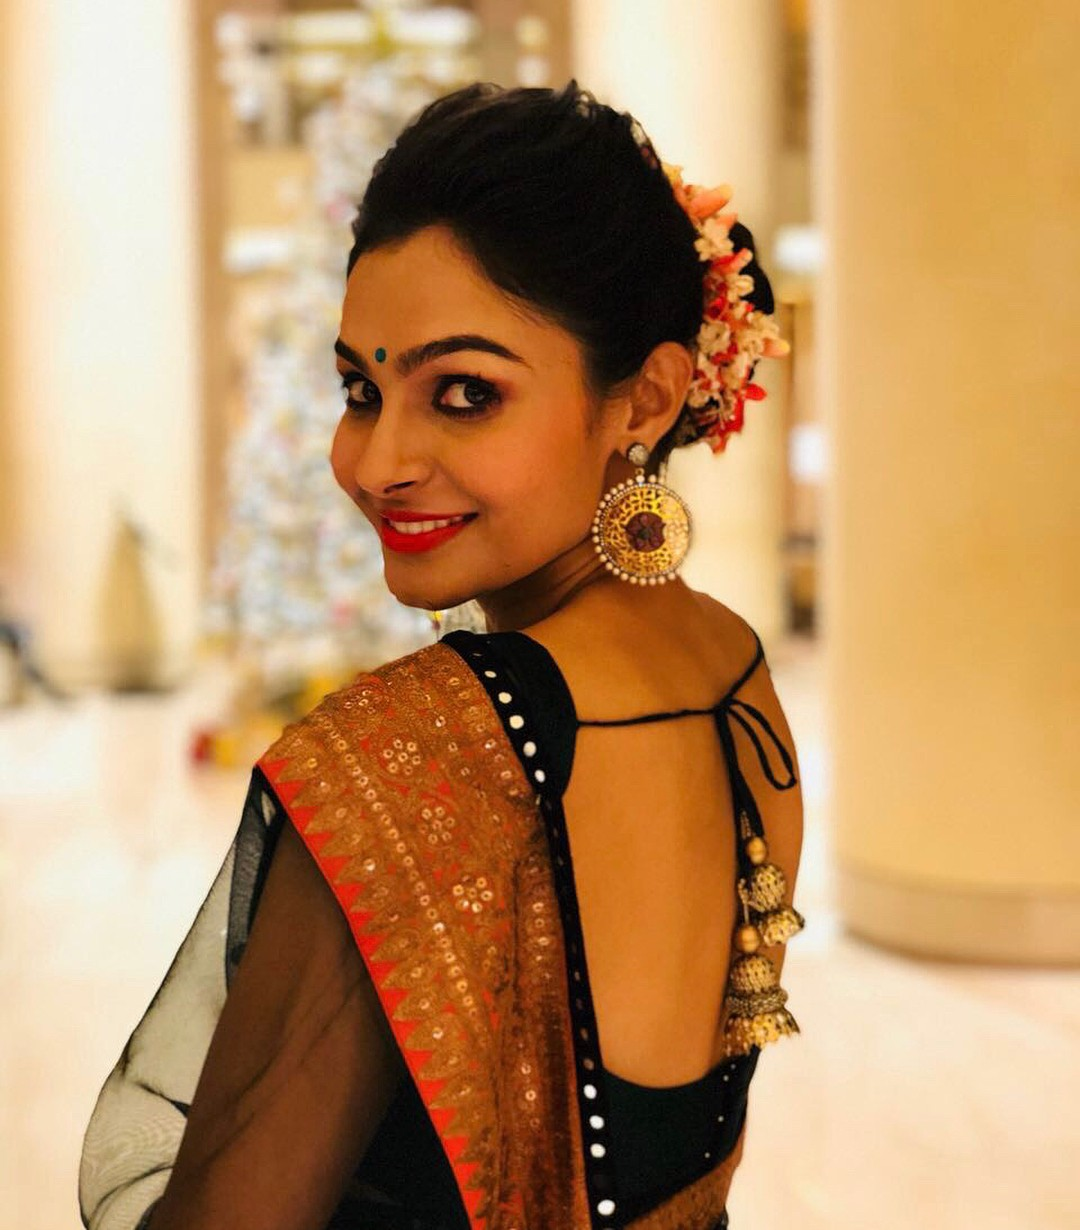 Latest Andrea Jeremiah Instagram Pictures - Sexy Actress Pictures | Hot Actress Pictures - ActressSnaps.com - ActressSnaps.com